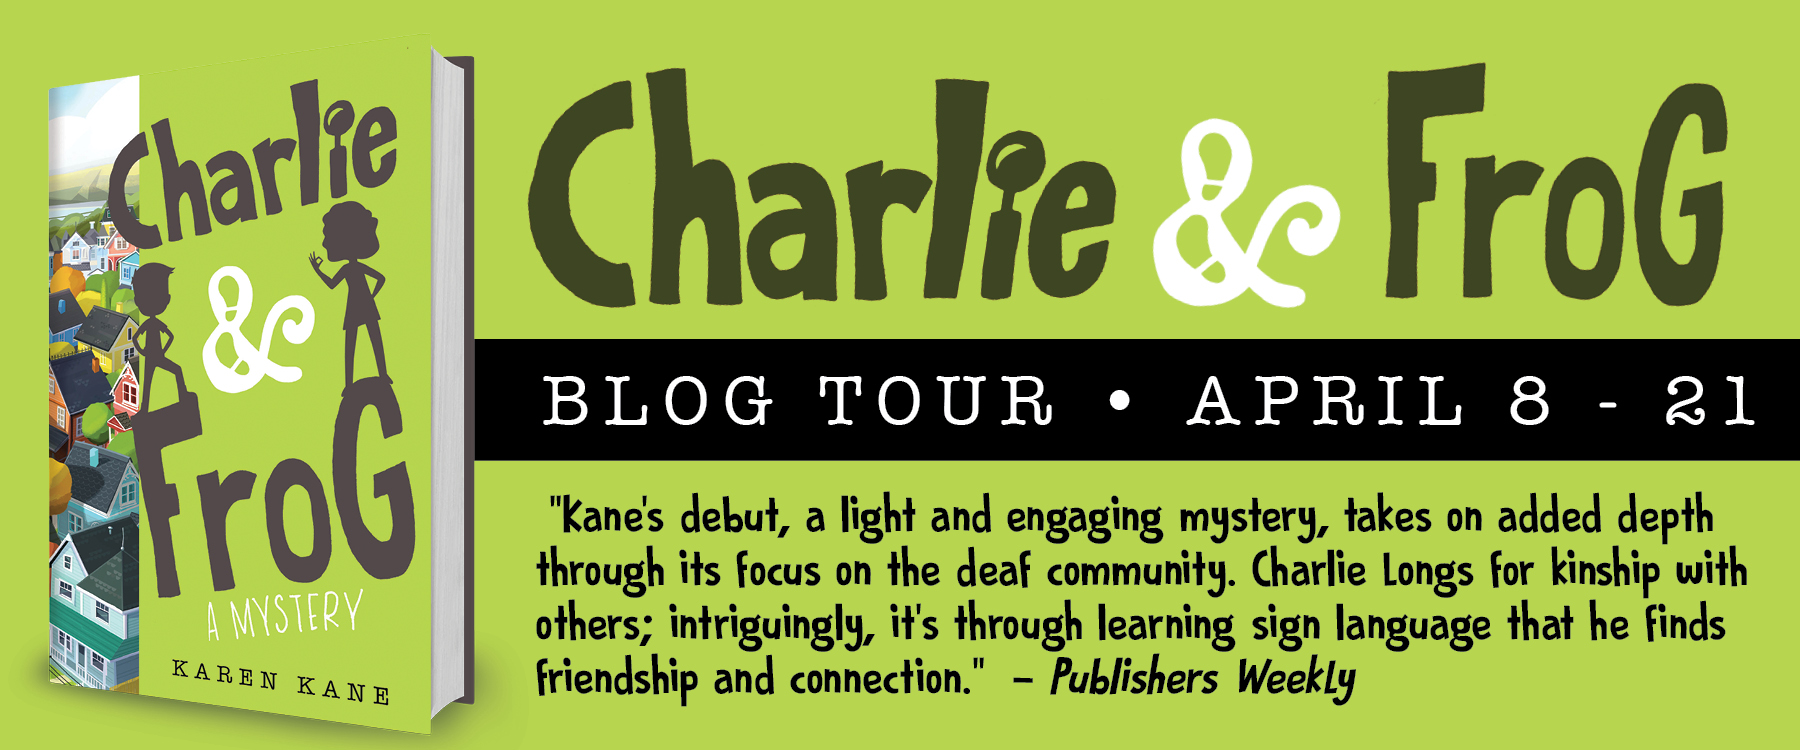 Charlie and Frog by Karen Kane book tour